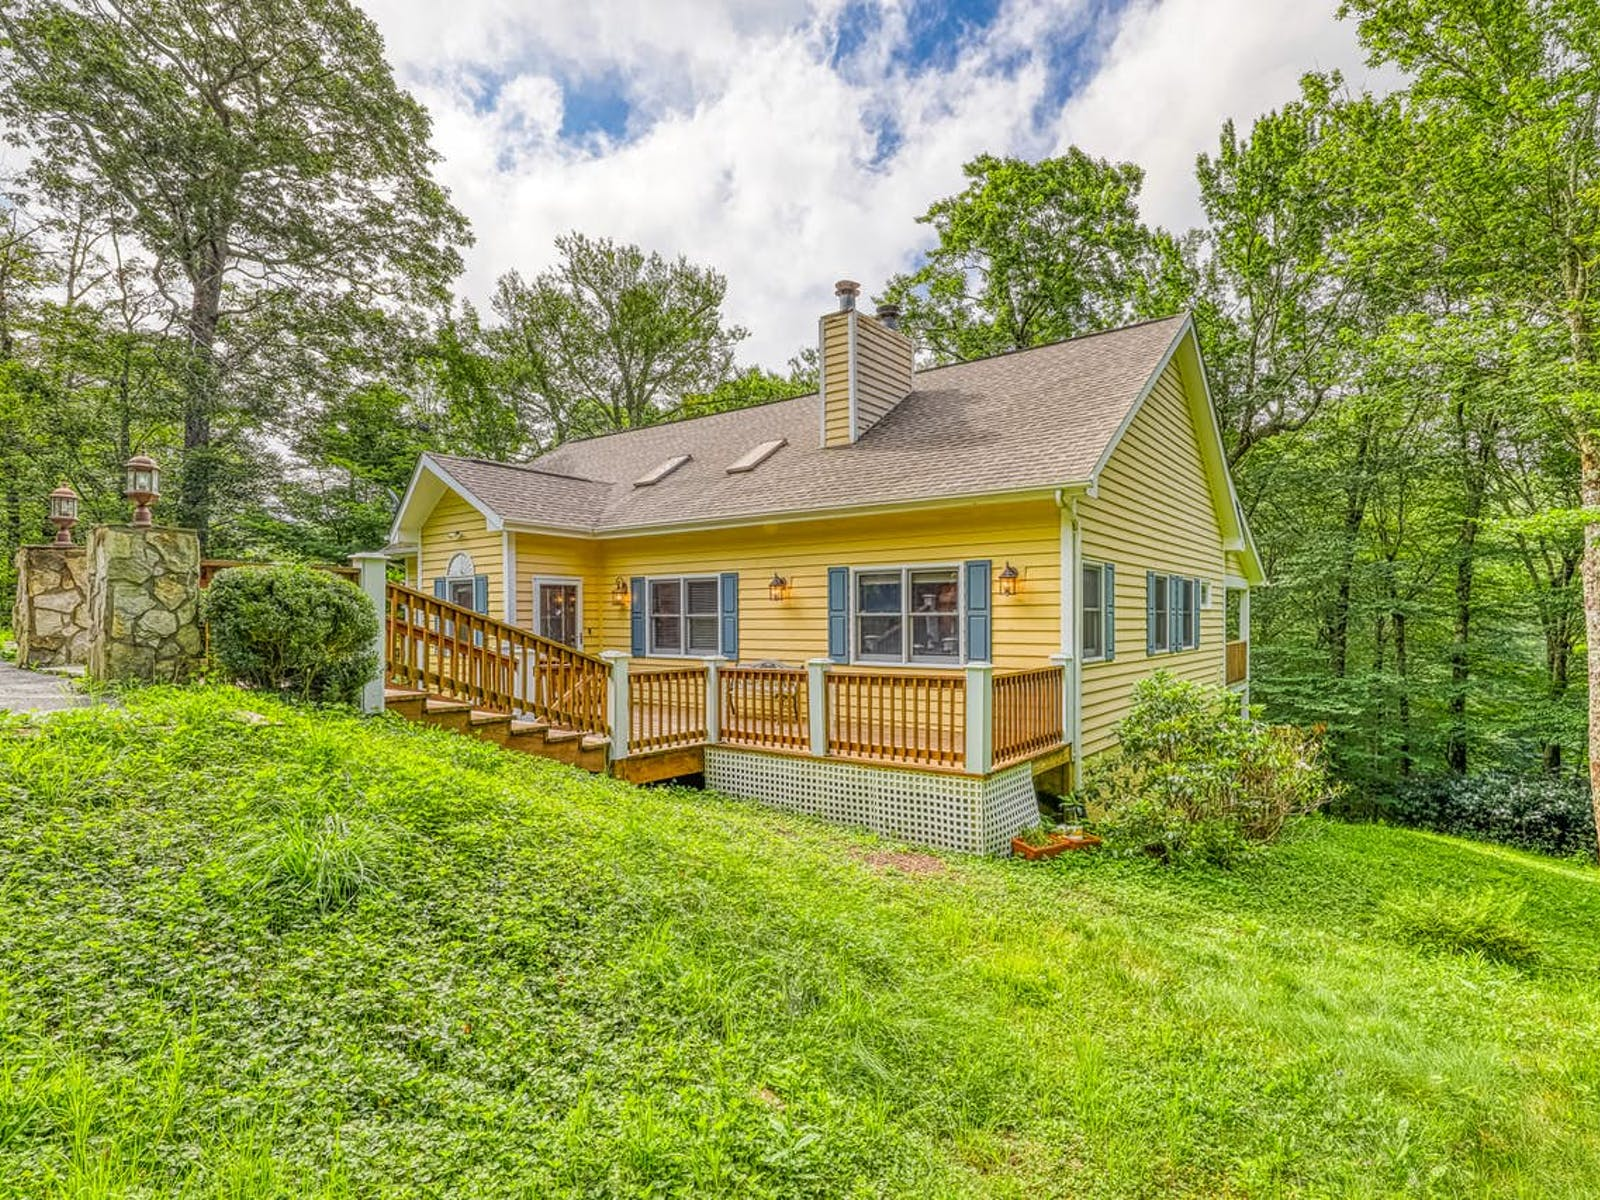 sugar mountain, nc vacation home with blue shutters